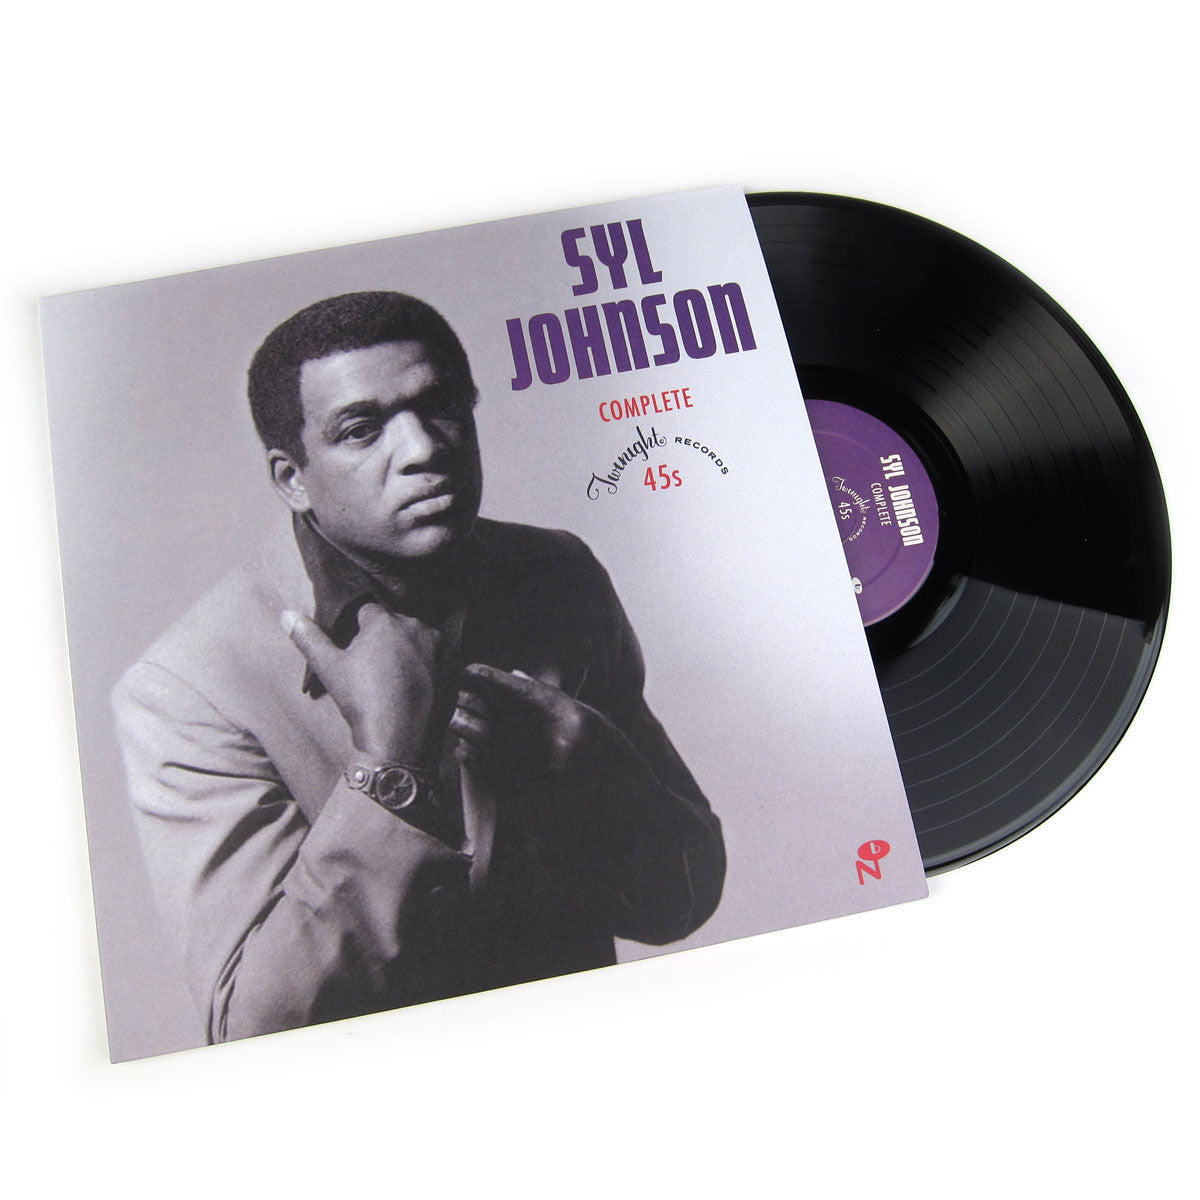 Syl Johnson: The Complete Twinight Singles Vinyl 2LP